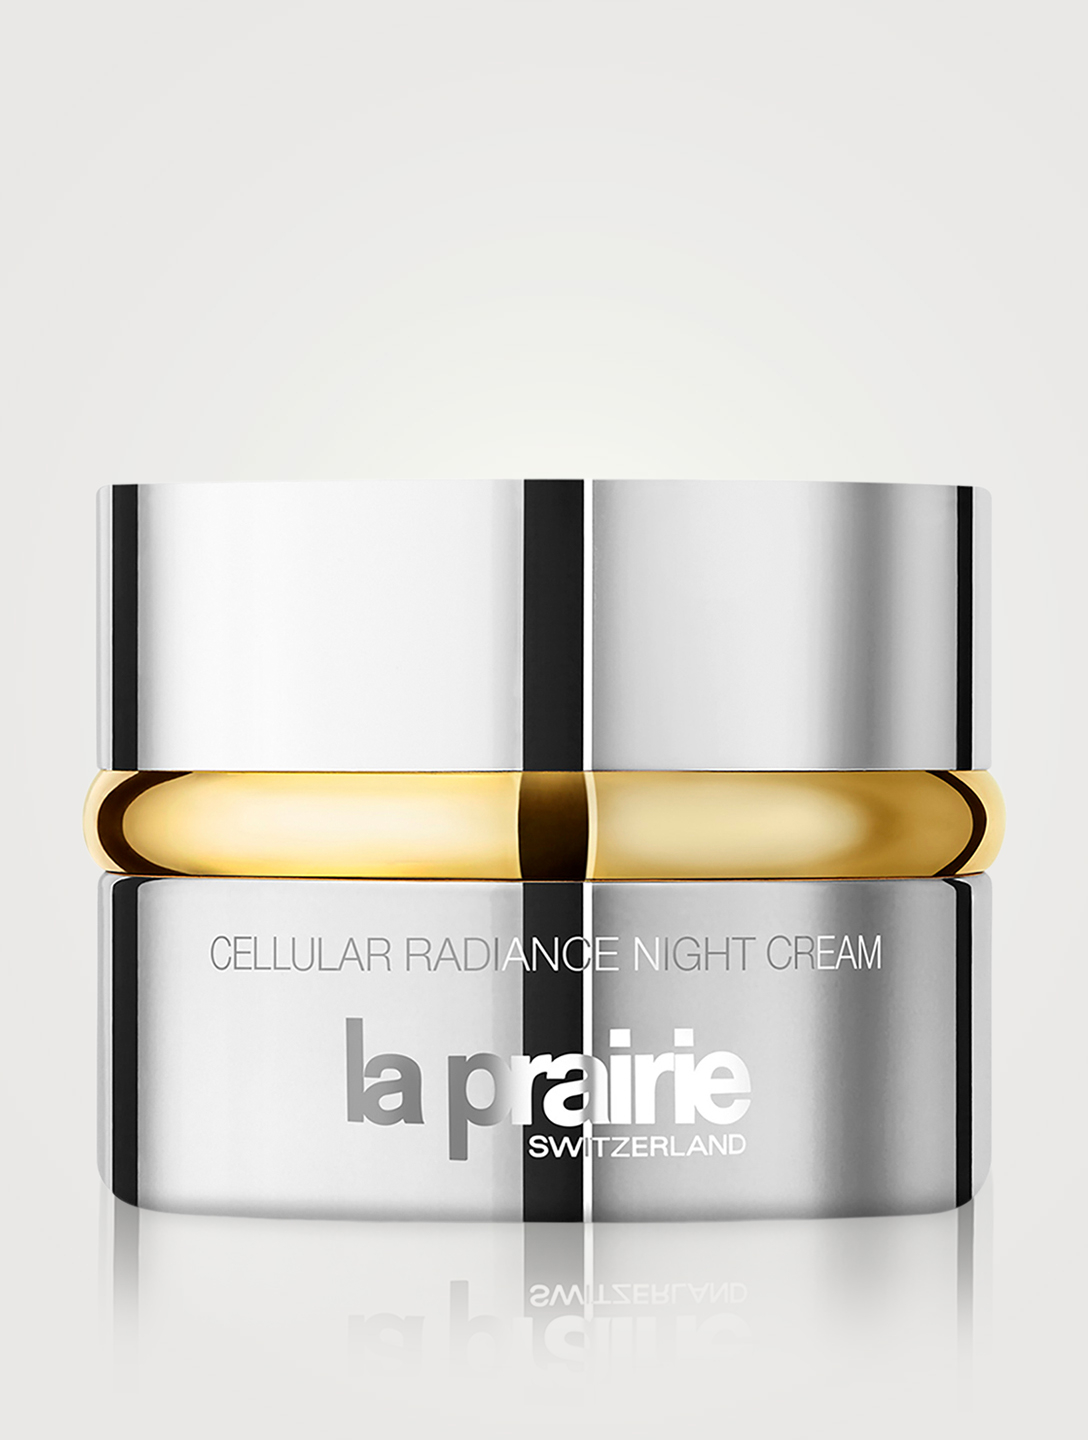 LA PRAIRIE Cellular Radiance Night Cream Beauty